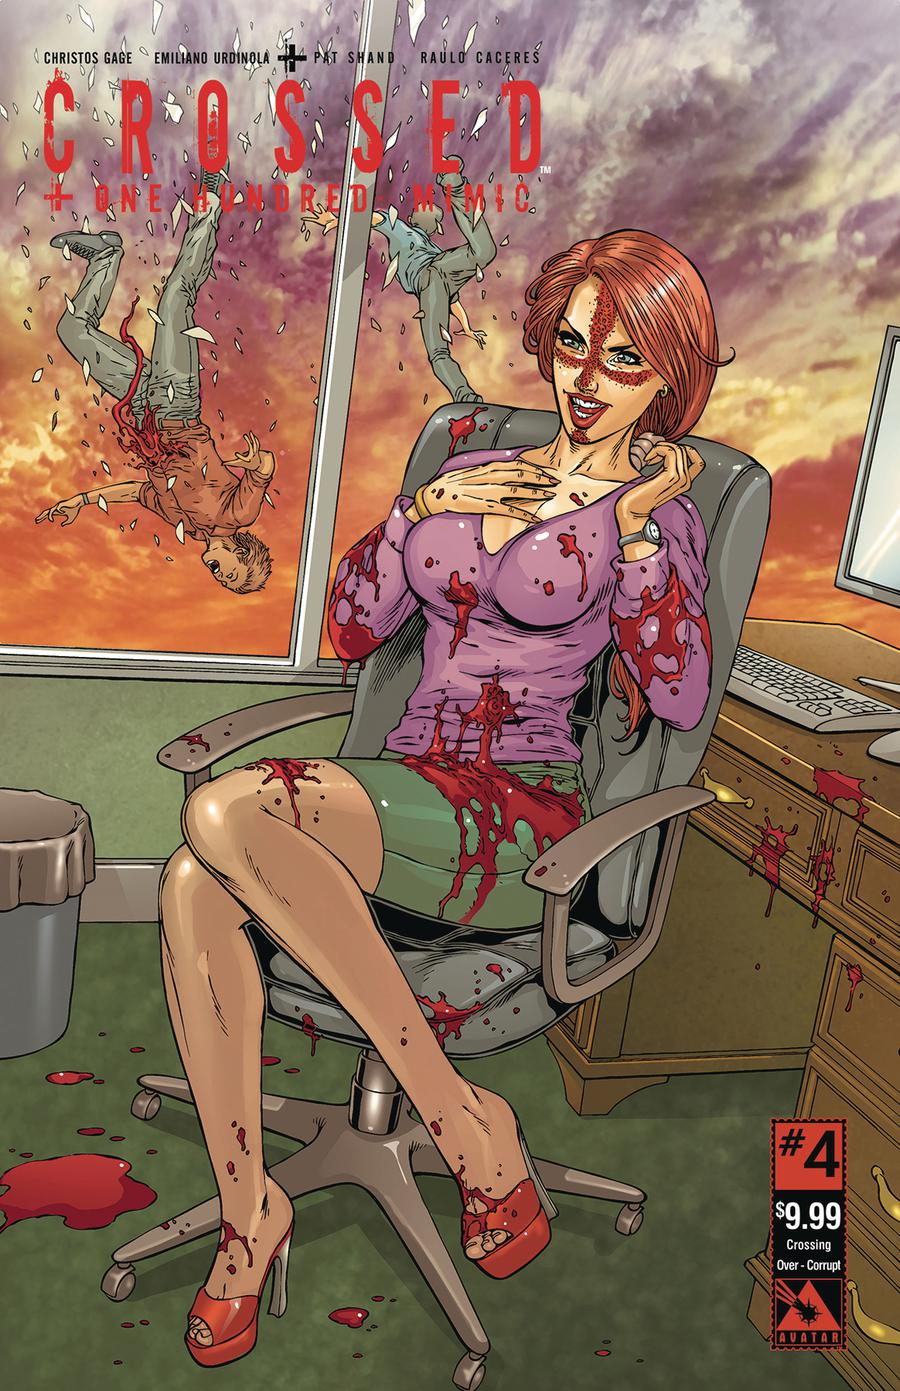 Crossed Plus 100 Mimic #4 Cover I Crossing Over Corrupt Cover